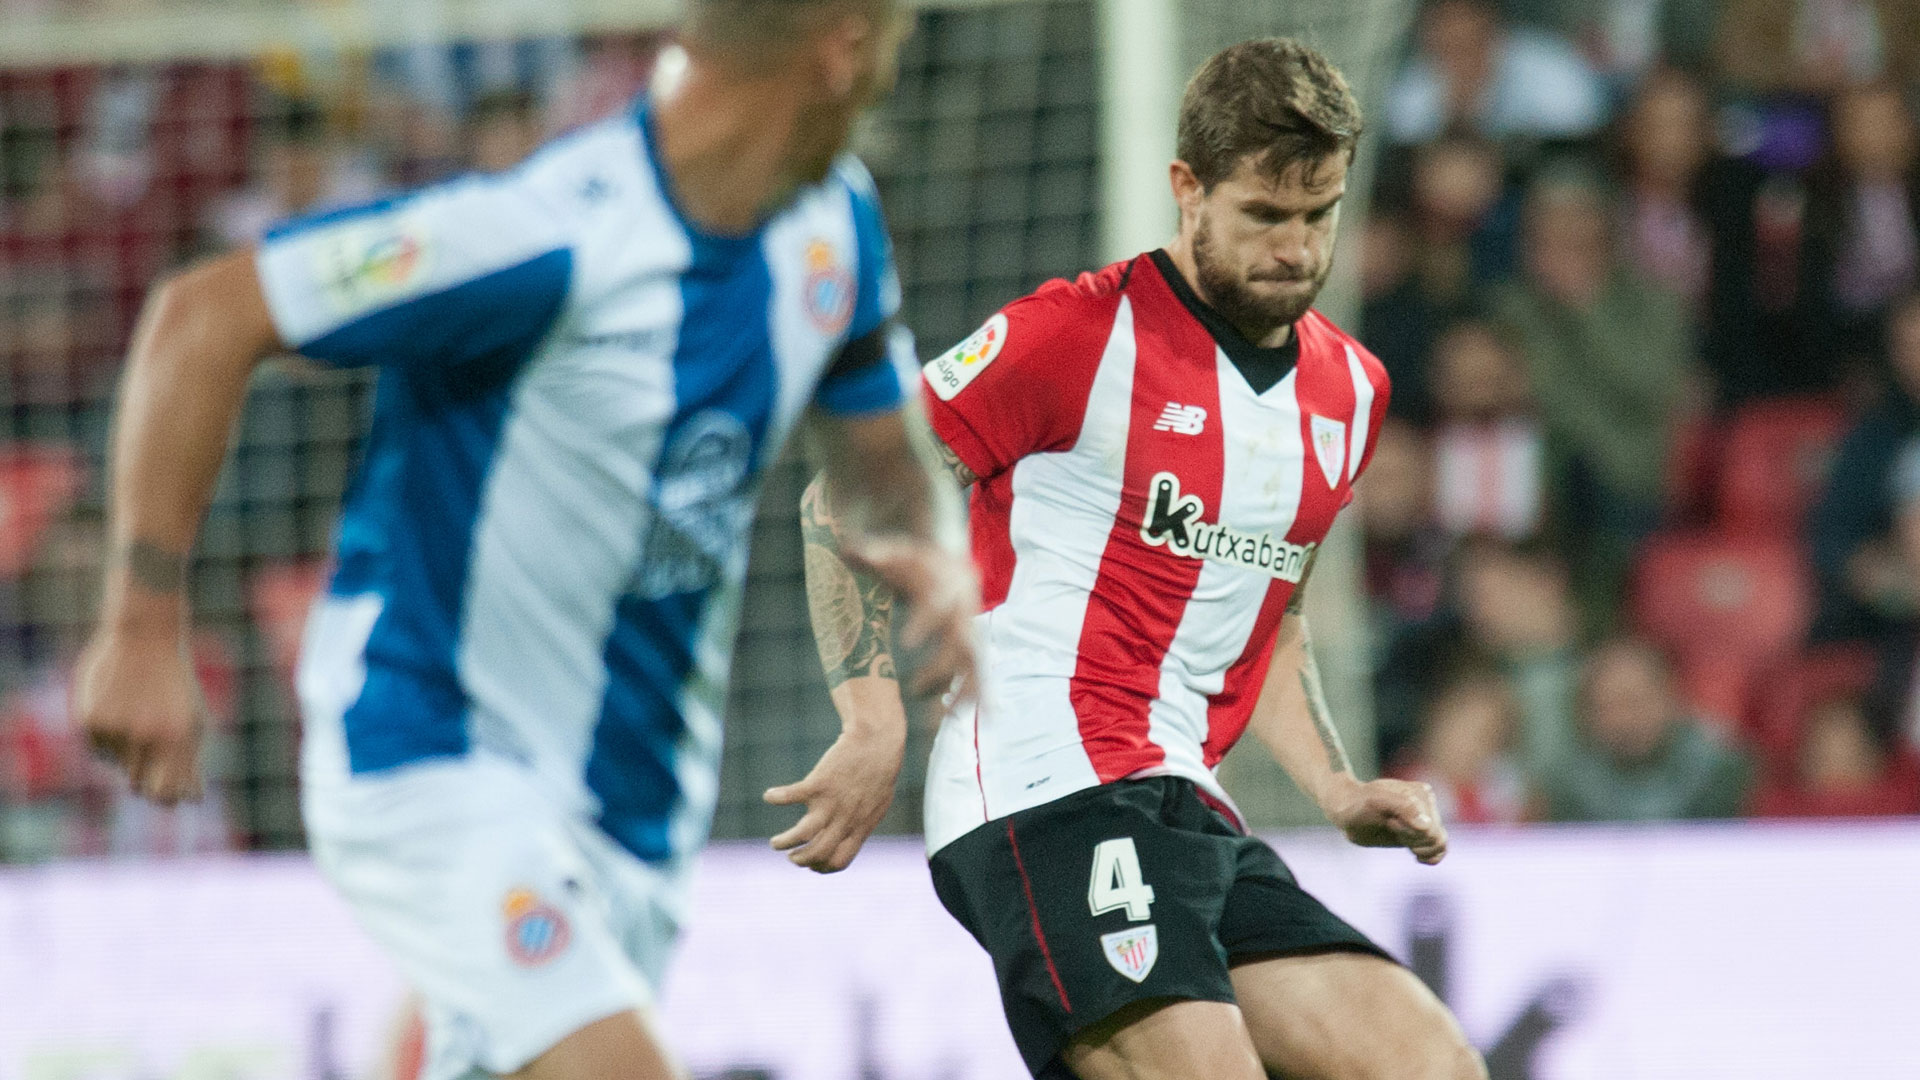 One match penalty for Iñigo Martínez